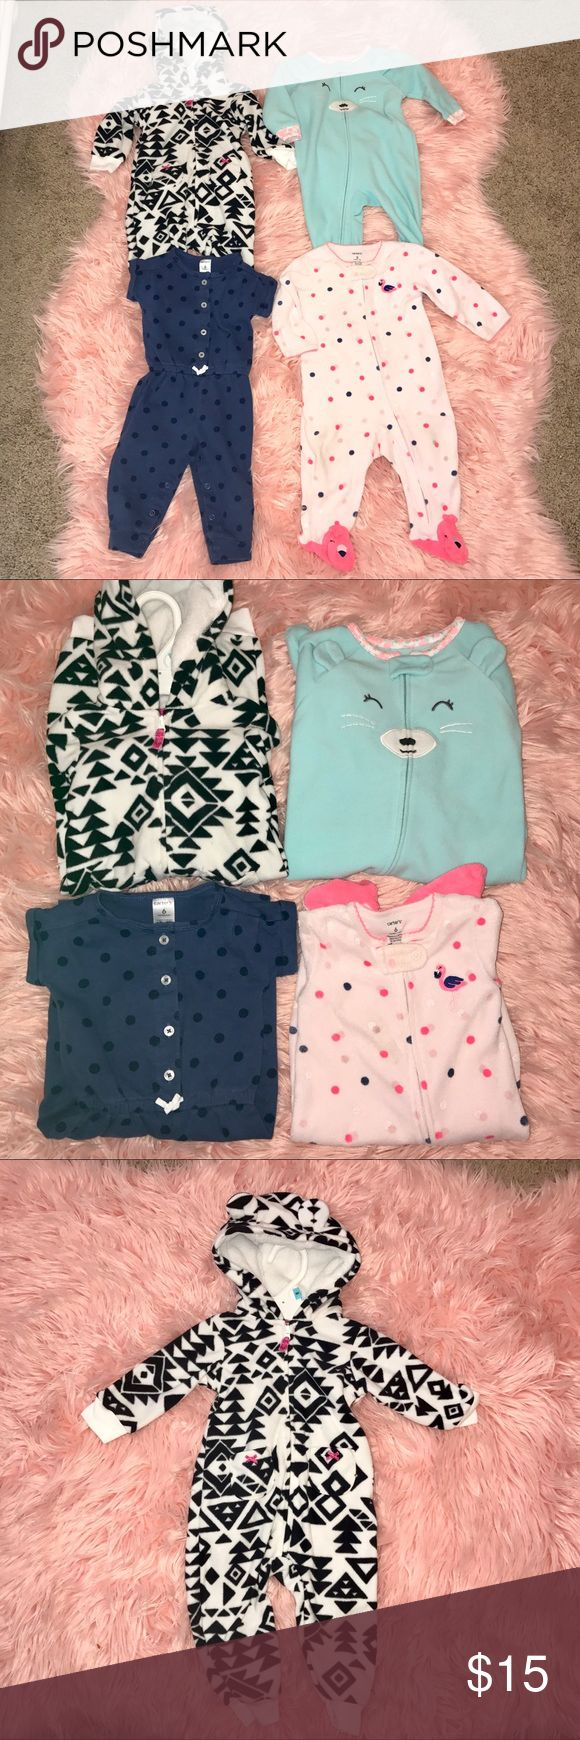 Carter's 4 Piece Sleep and Play Bundle Carter's Sleep and Play Bundle. This comes with 4 pieces- the first is a black and white Aztec fleece zip up Jumpsuit with hoodie and pockets. Perfect for layering in fall, winter or early spring! Second is a light teal fleece zip up Footed pajama, the next is a blue and navy polka dot short sleeve sweatshirt material Jumpsuit, with snap up bottom, and lastly a pink and polka dot Flamingo terry cloth Footed pajama zip up with flamingos on the feet…